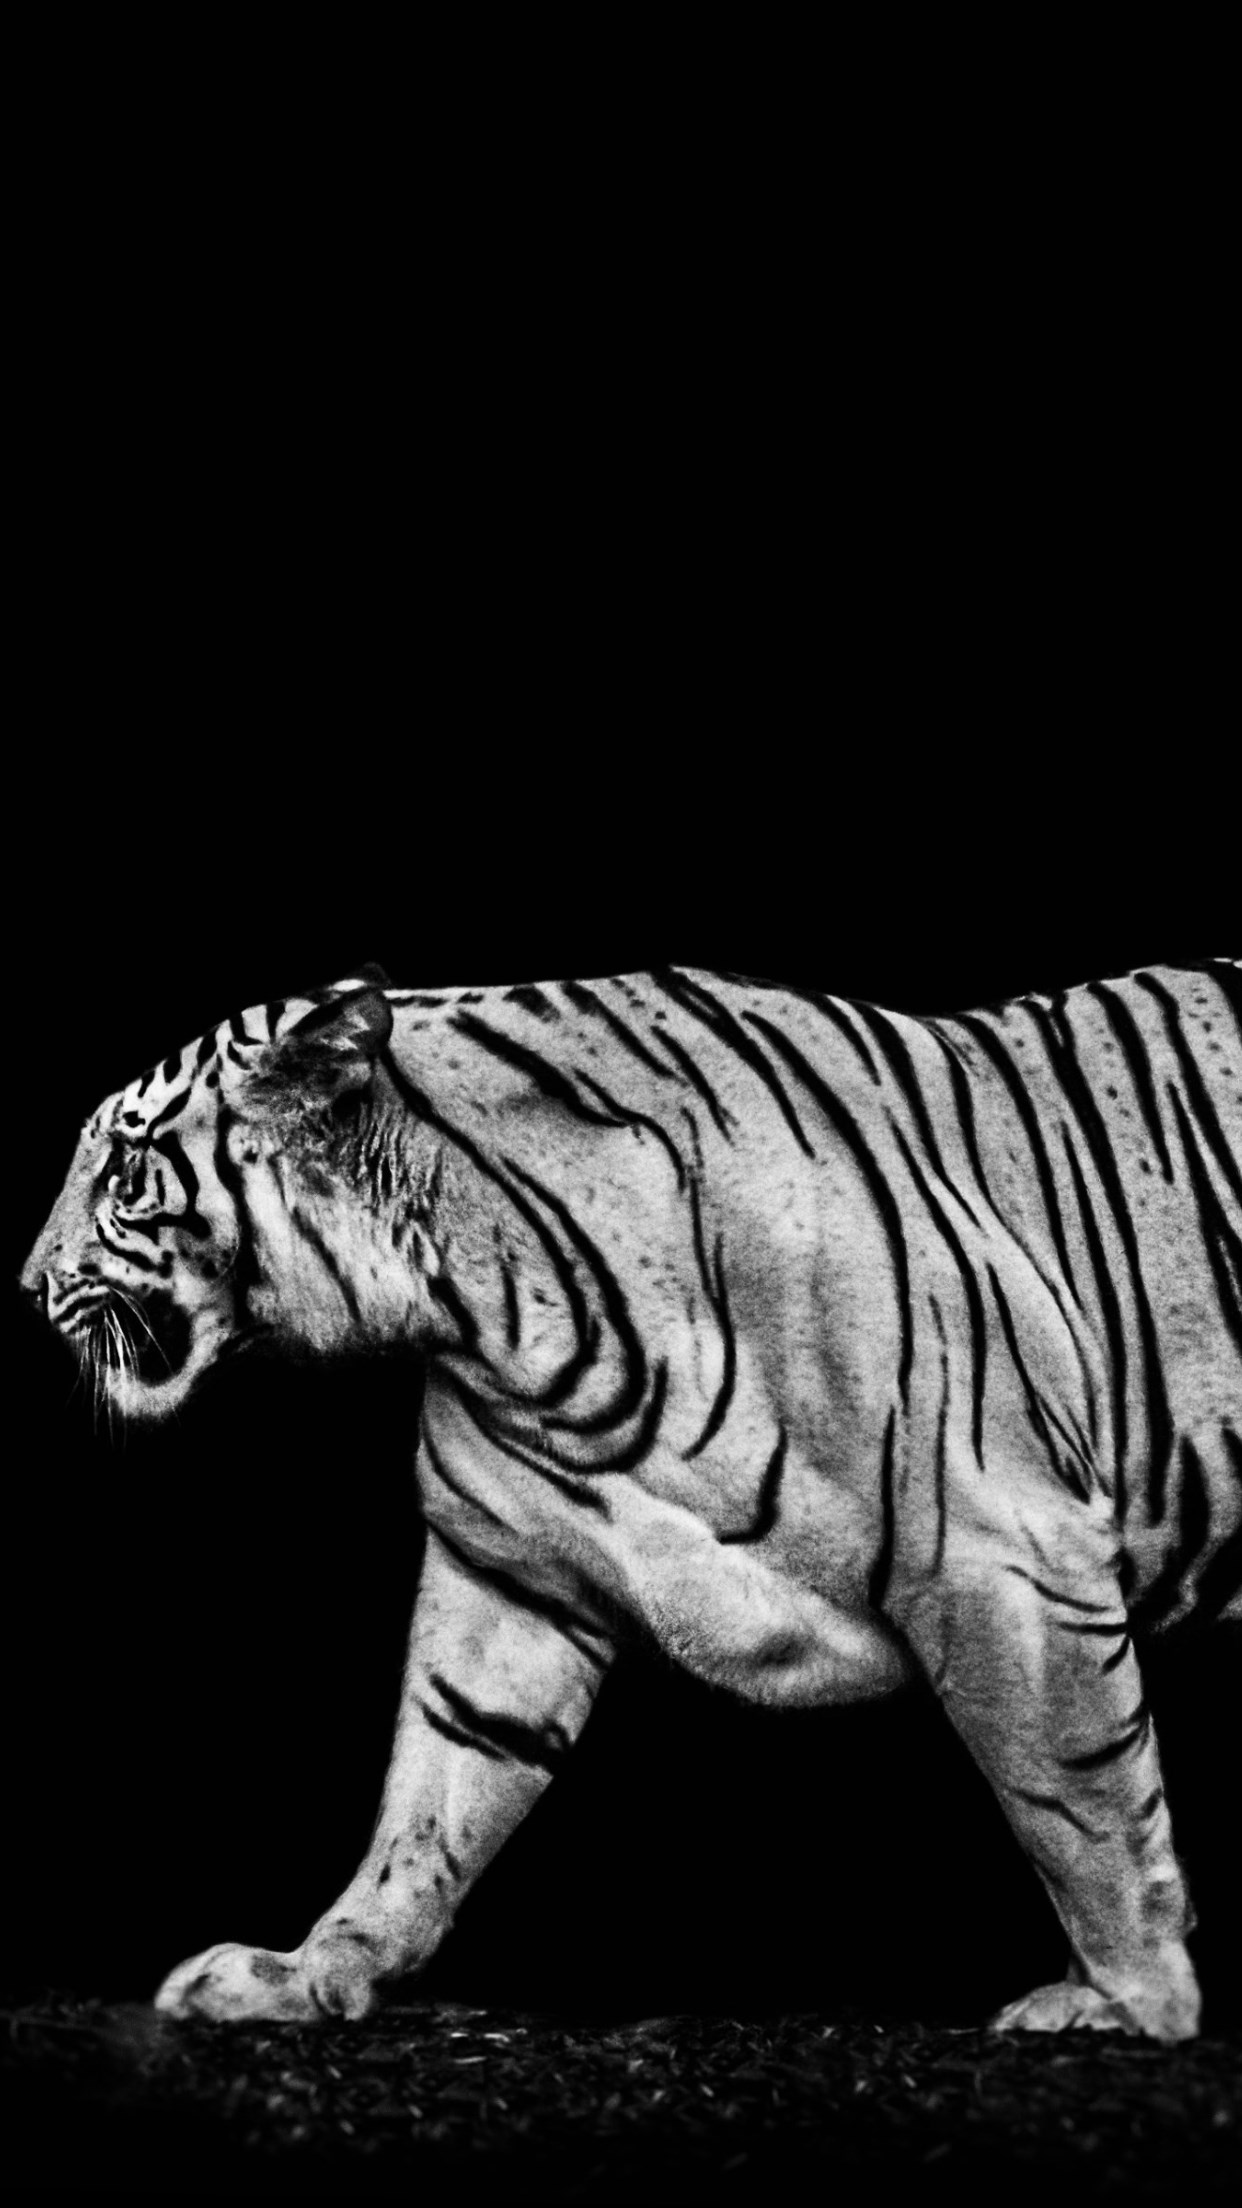 Tiger in the darkness wallpaper 1242x2208